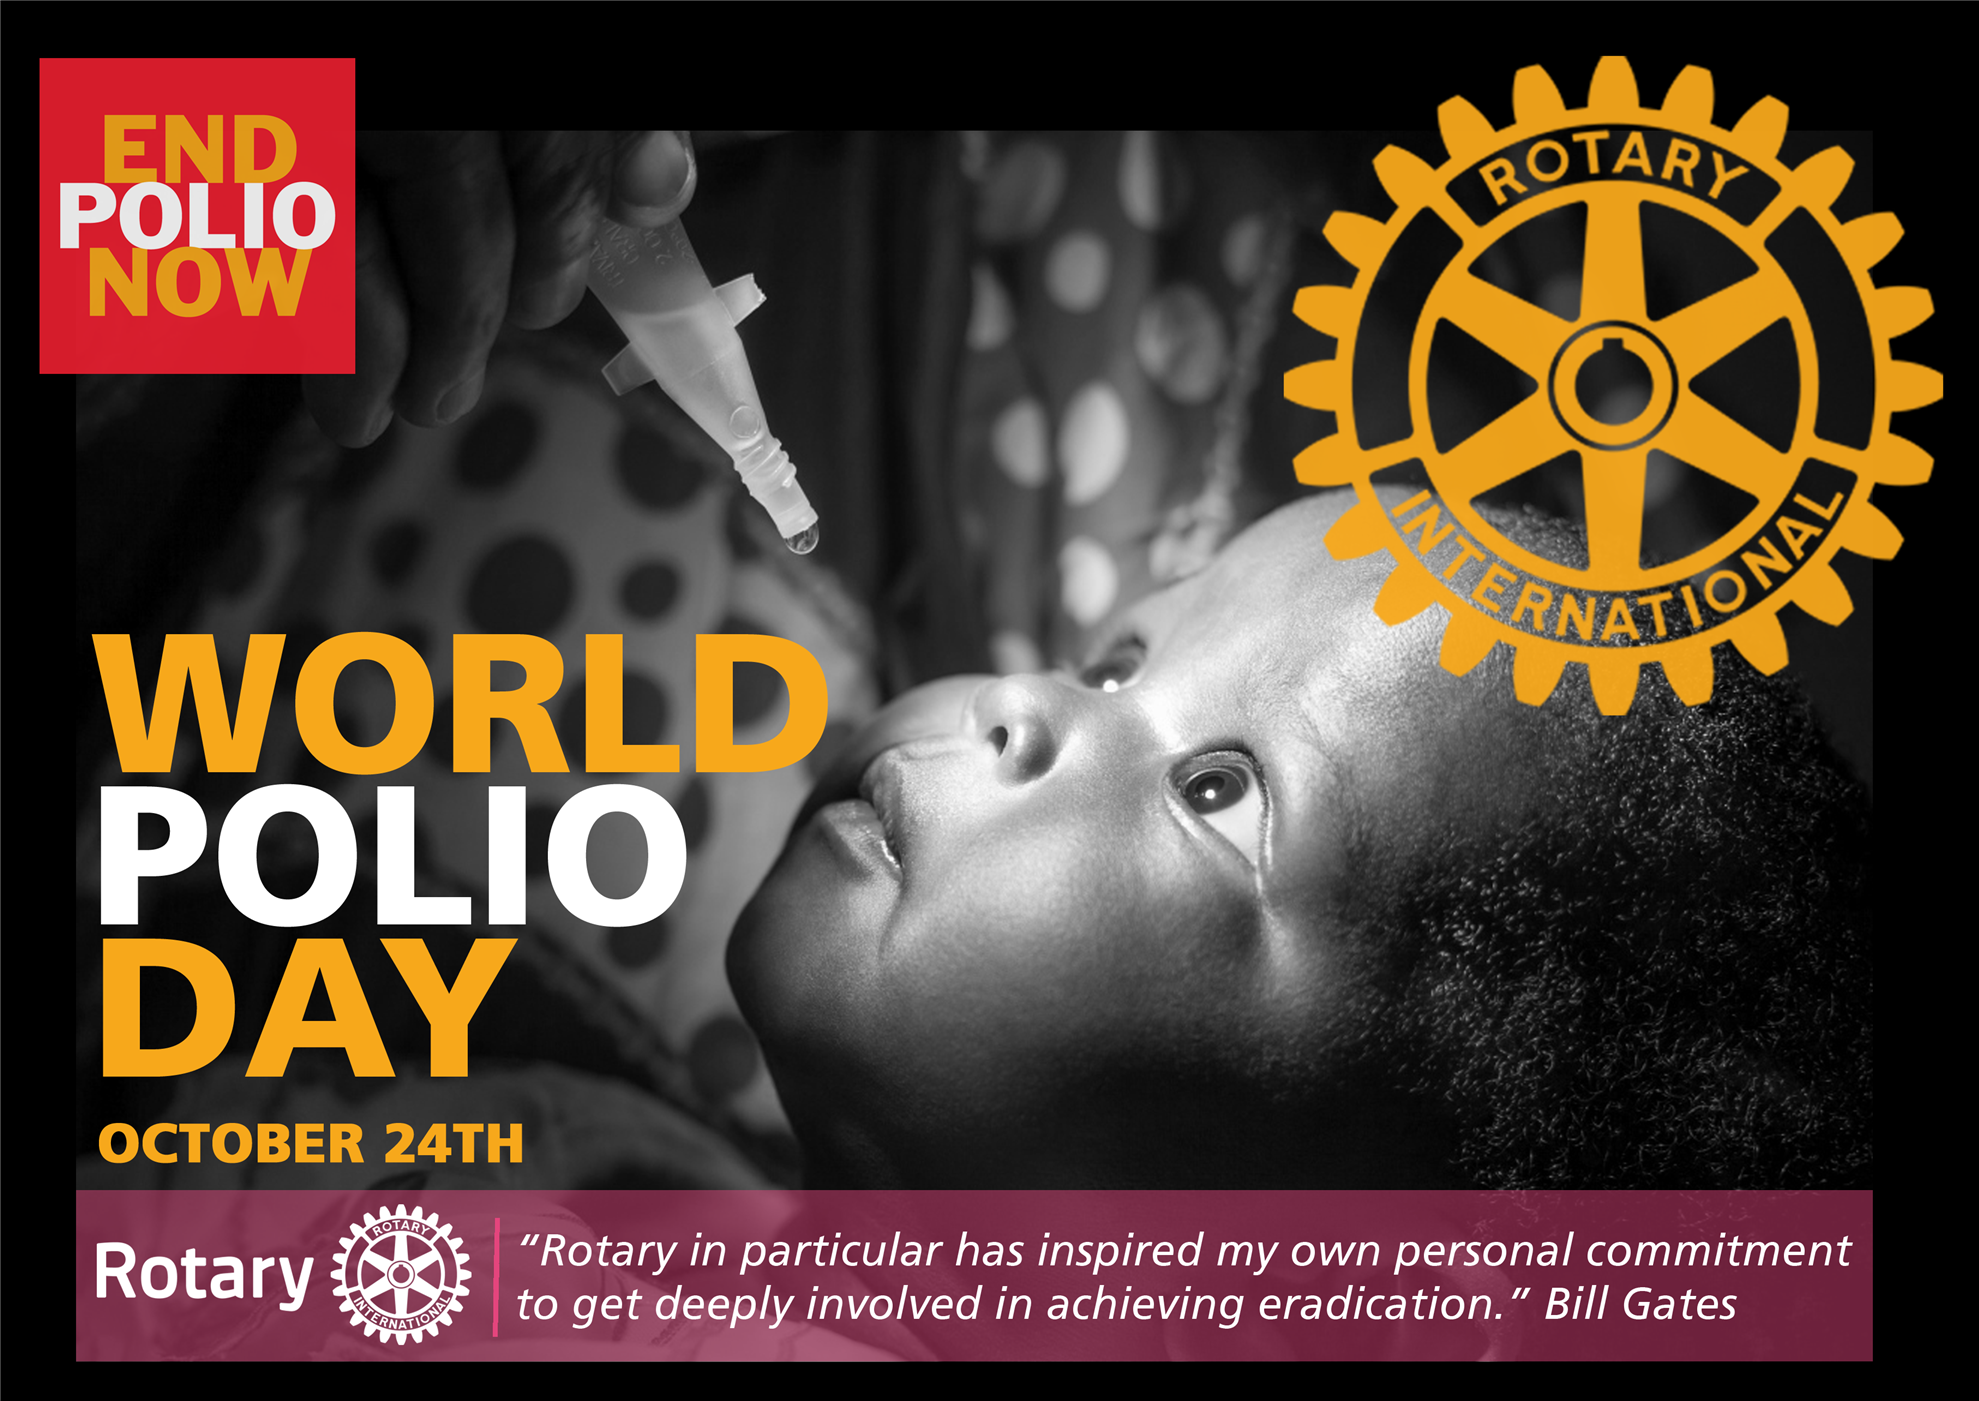 World Polio Day Is October 24 | Rotary District 5280